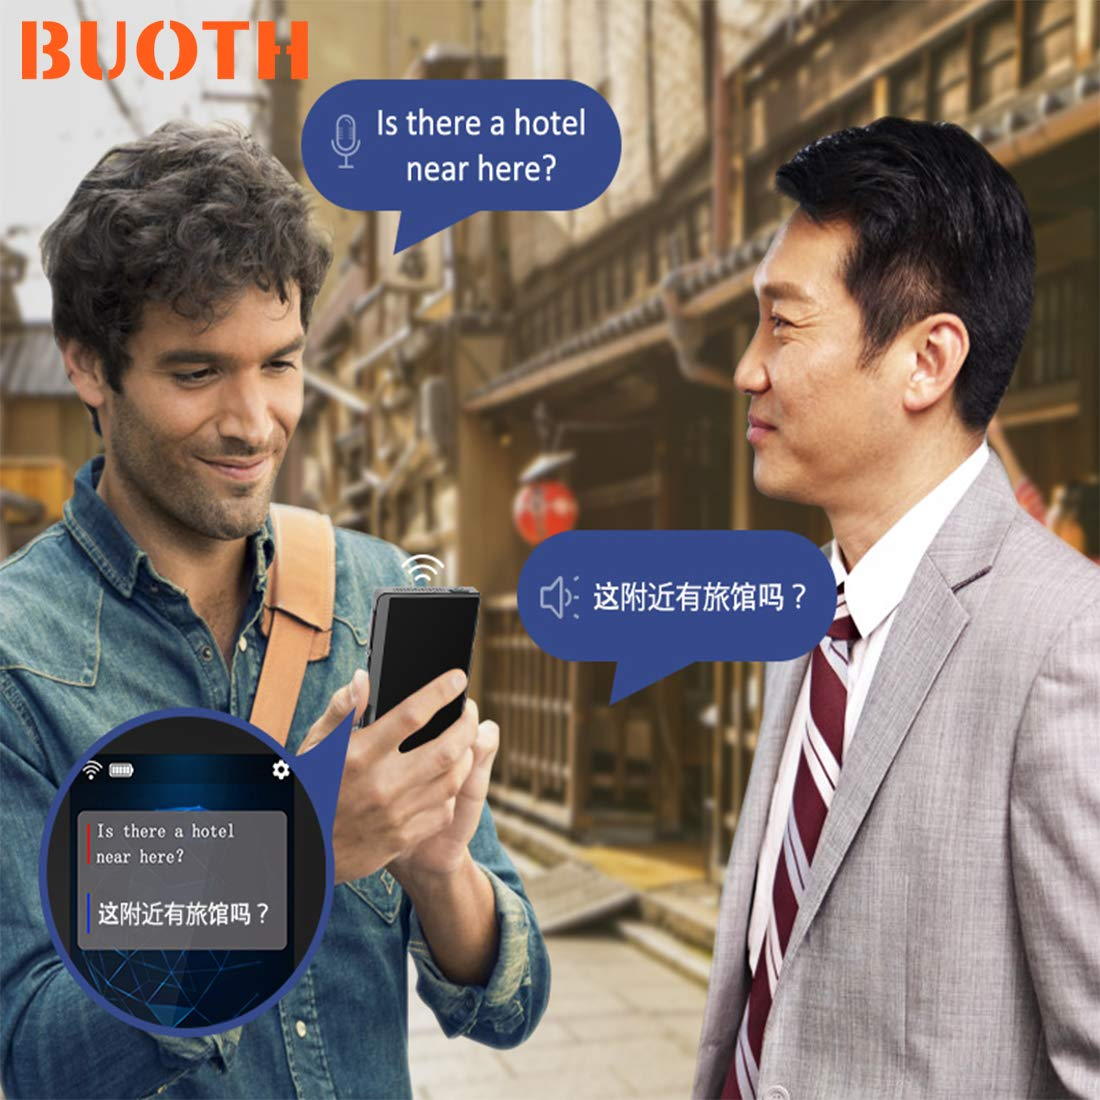 BUOTH Smart Voice Translator Device,70 Languages Instant Two Way Translation with 2.4 Inch Touch Screen Portable for Travelling Learning Business Shopping Meeting by Buoth (Image #4)